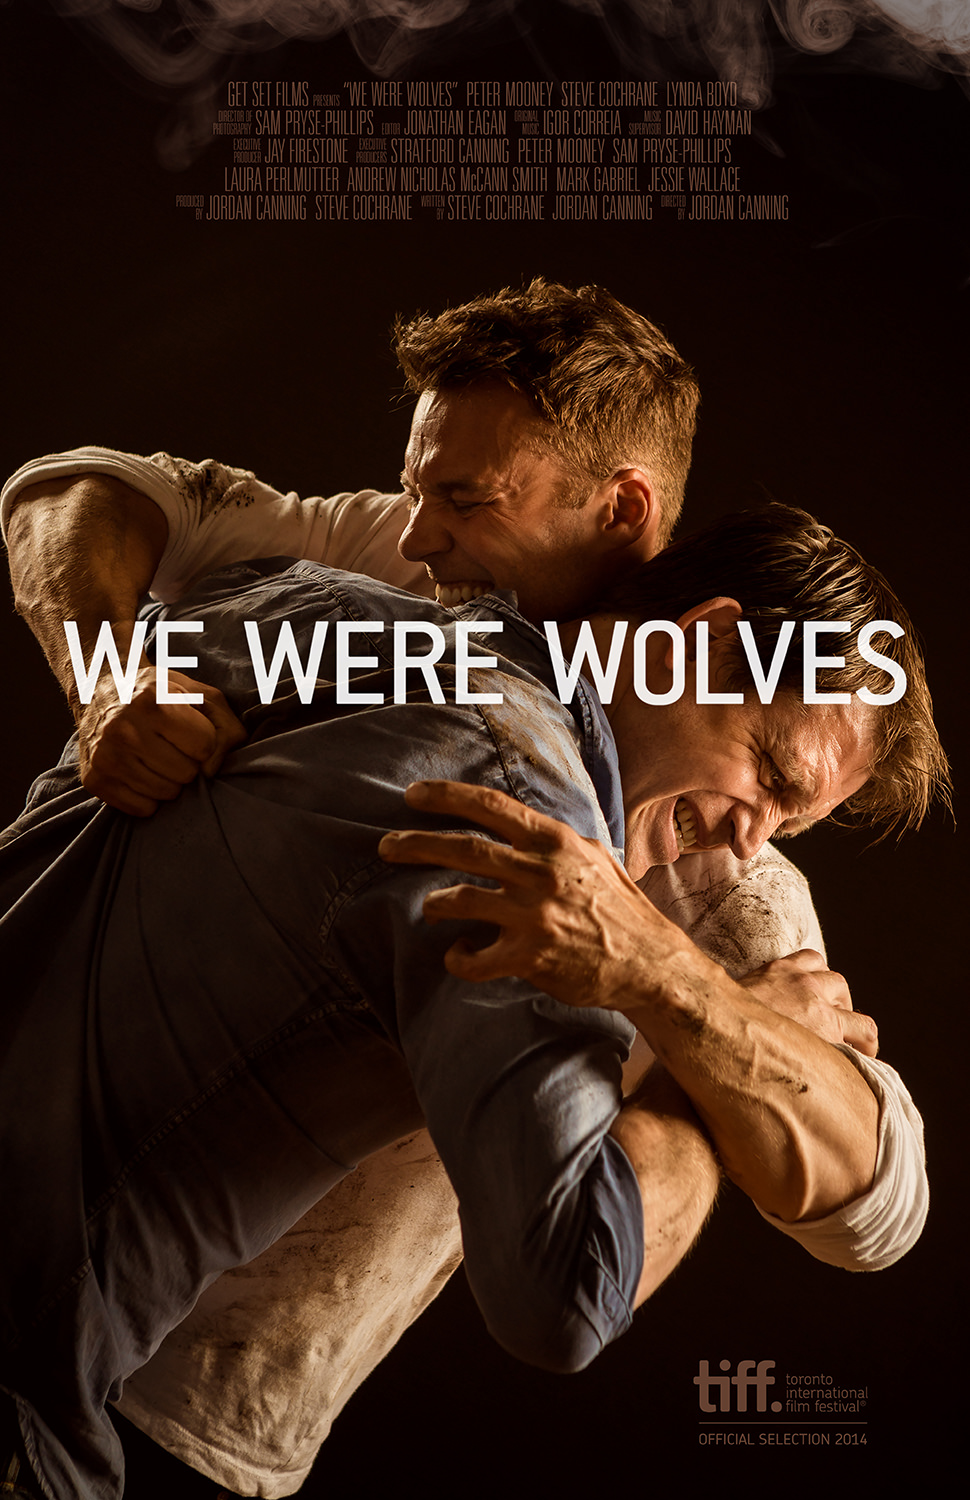 We-Were-Wolves-movie-Poster.jpg